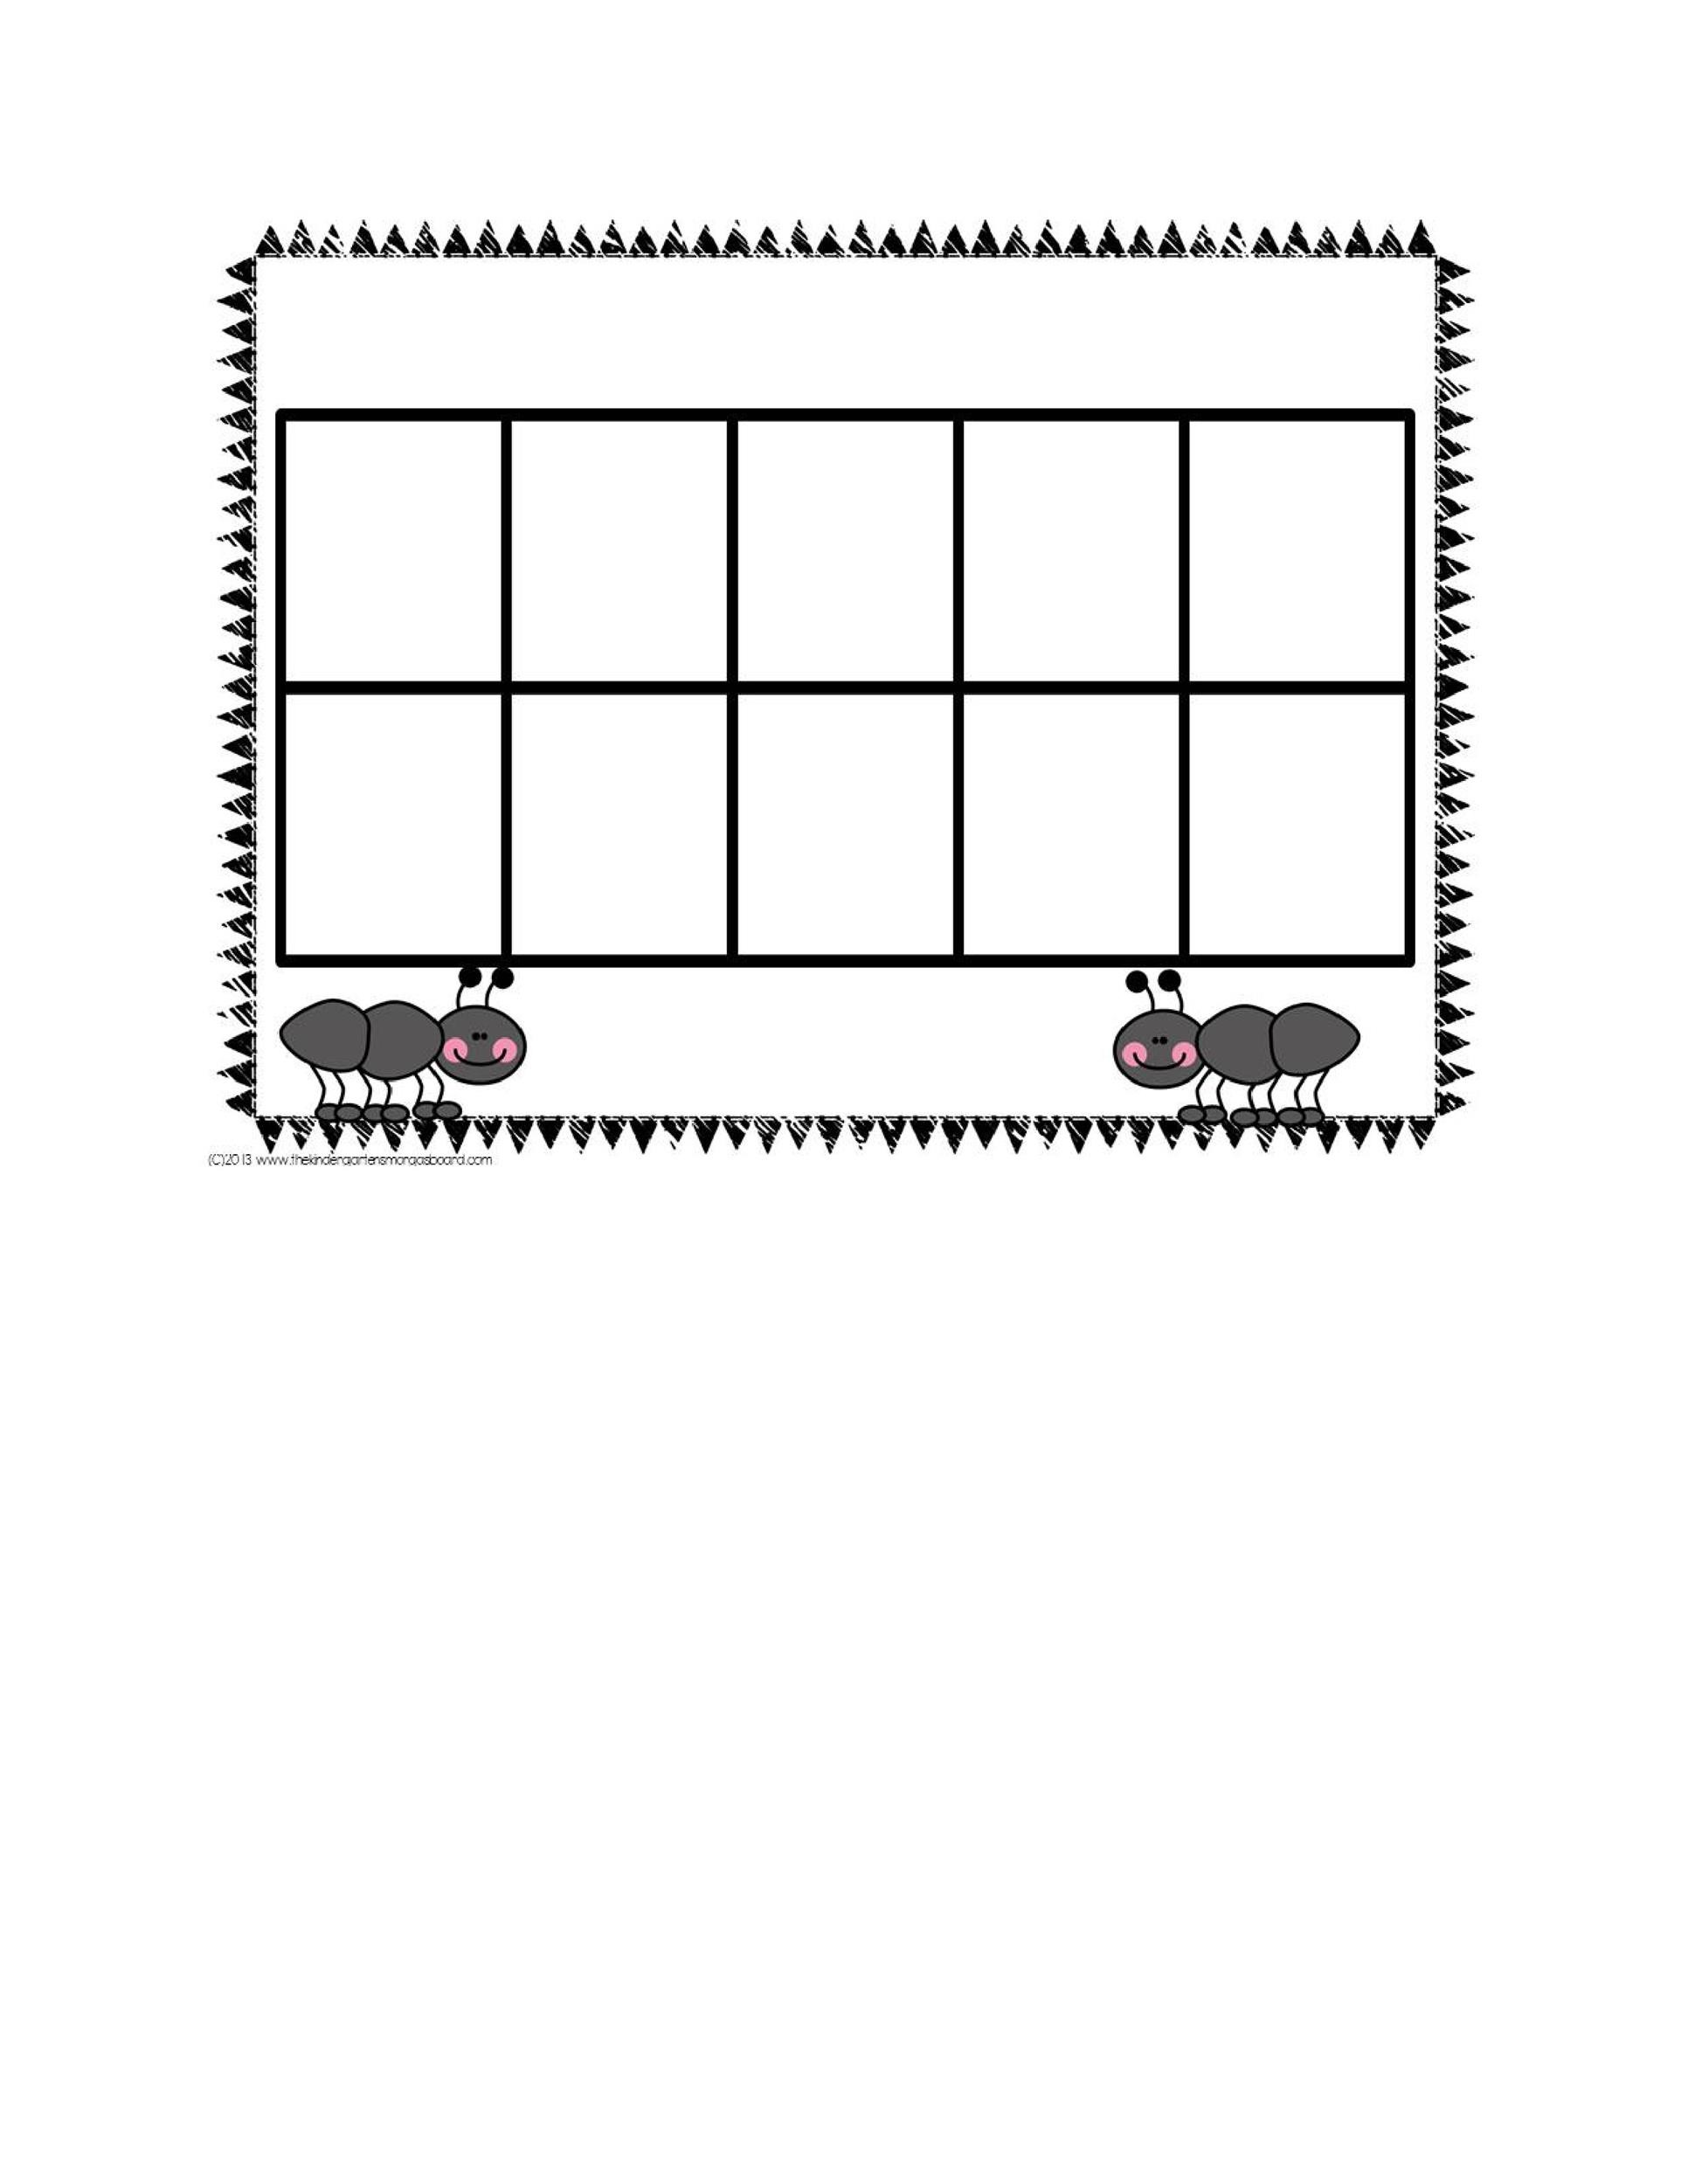 photograph relating to Printable Frame Template named 36 Printable 10 Body Templates (Free of charge) ᐅ Template Lab